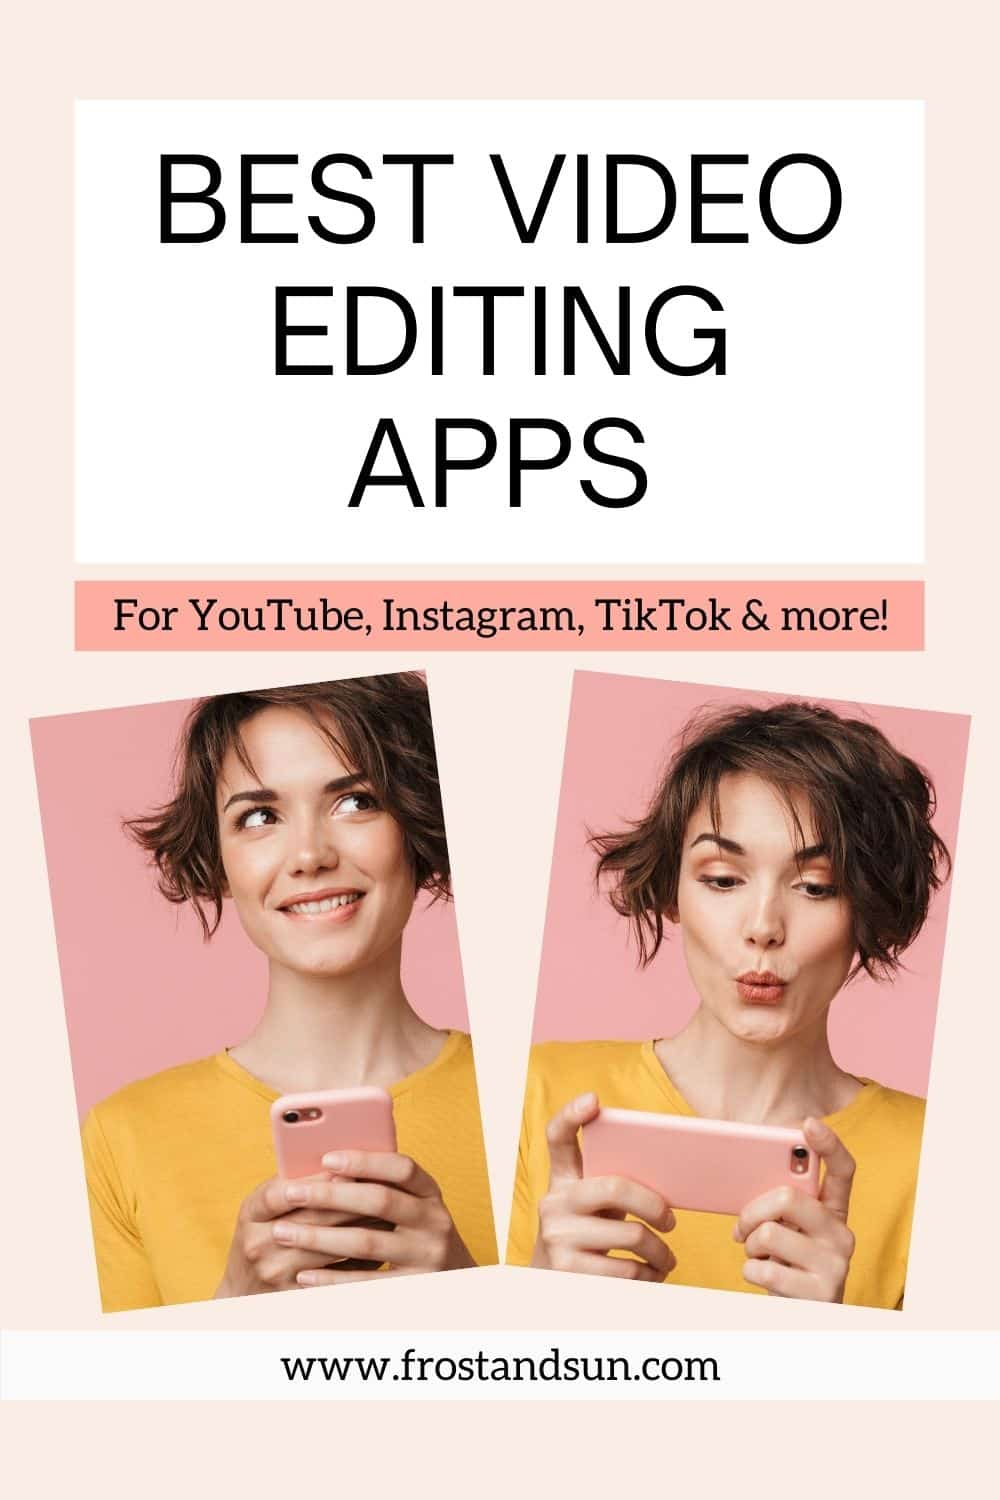 The Best Video Editing Apps for iOS & Android